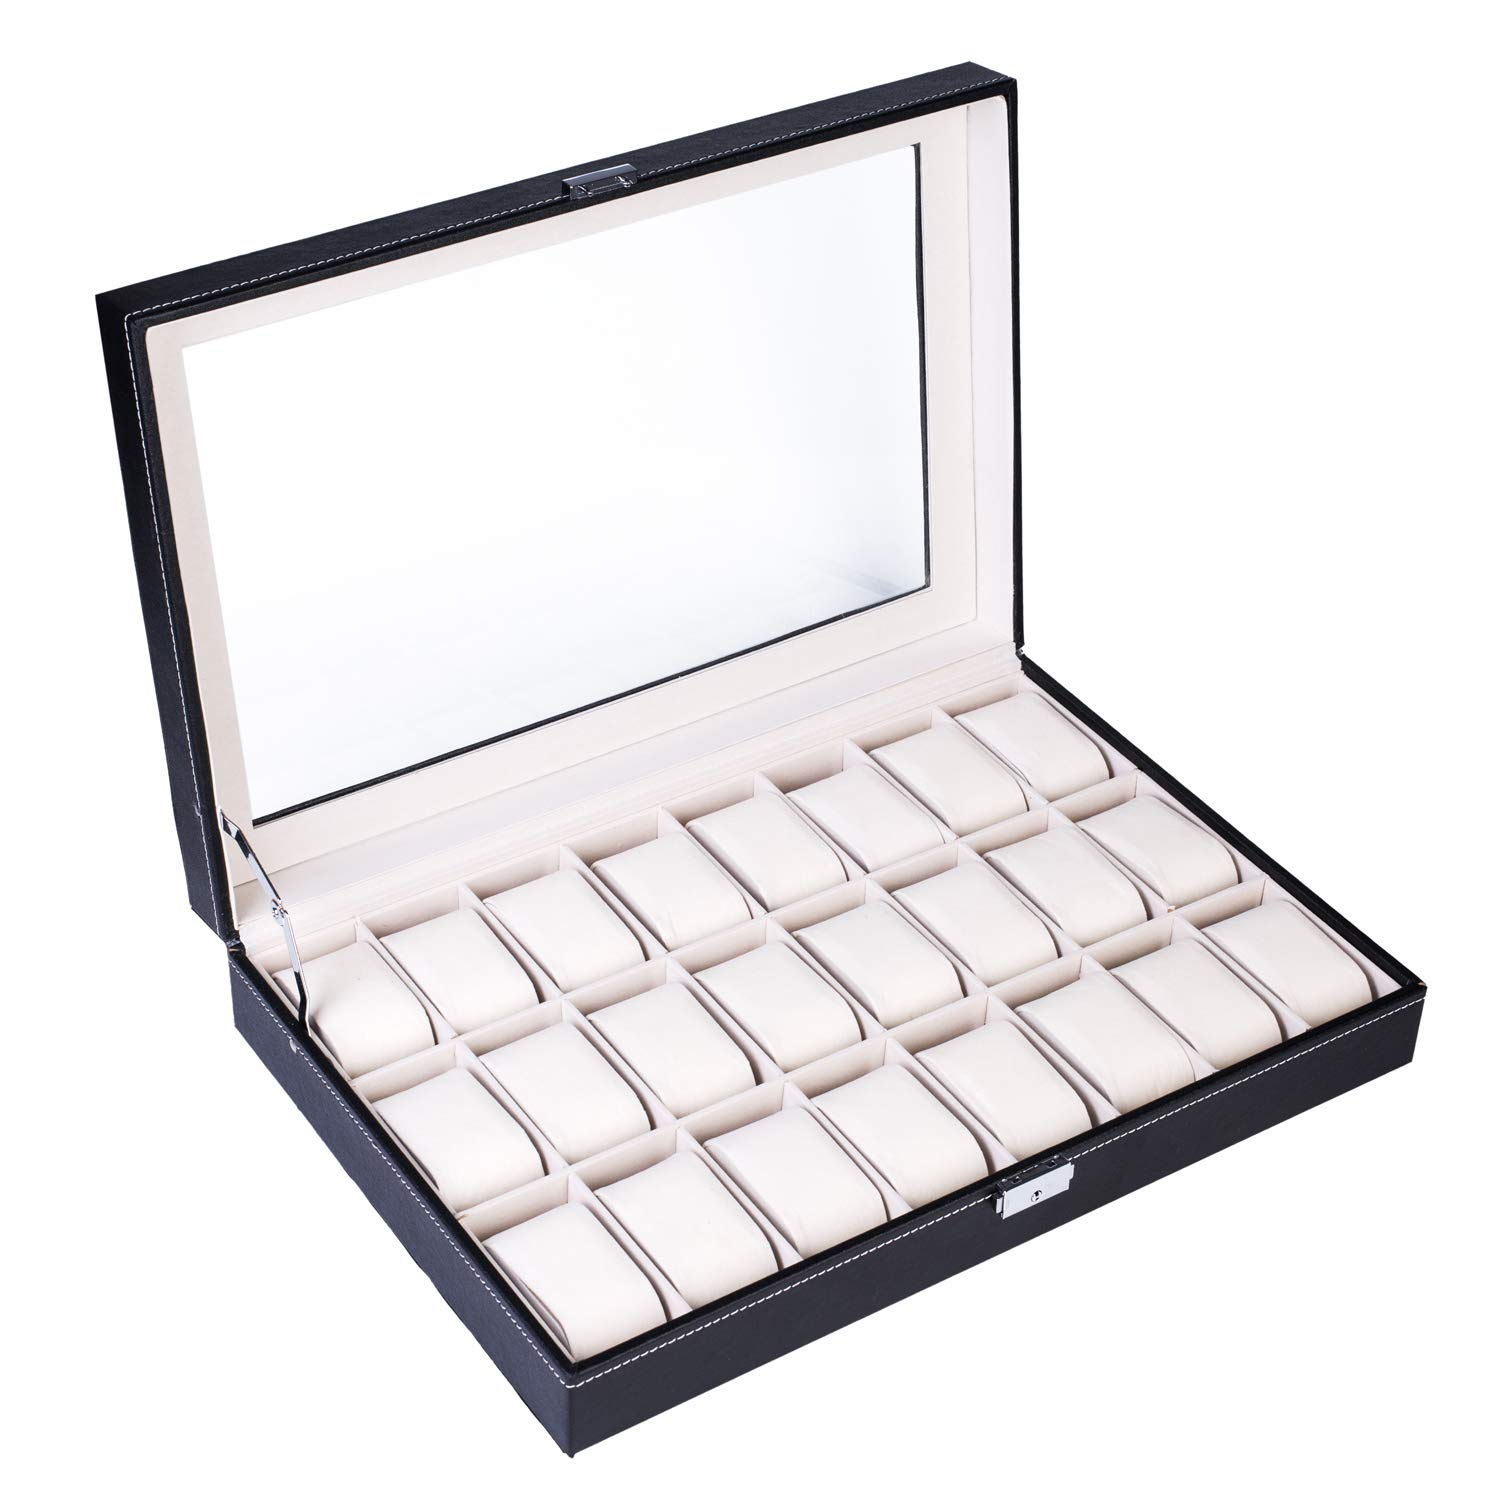 24 Slot Elegant Portable Black Watch Collection Box Case Organizer for Storage Display Holds Watches Jewelry for Men & Women